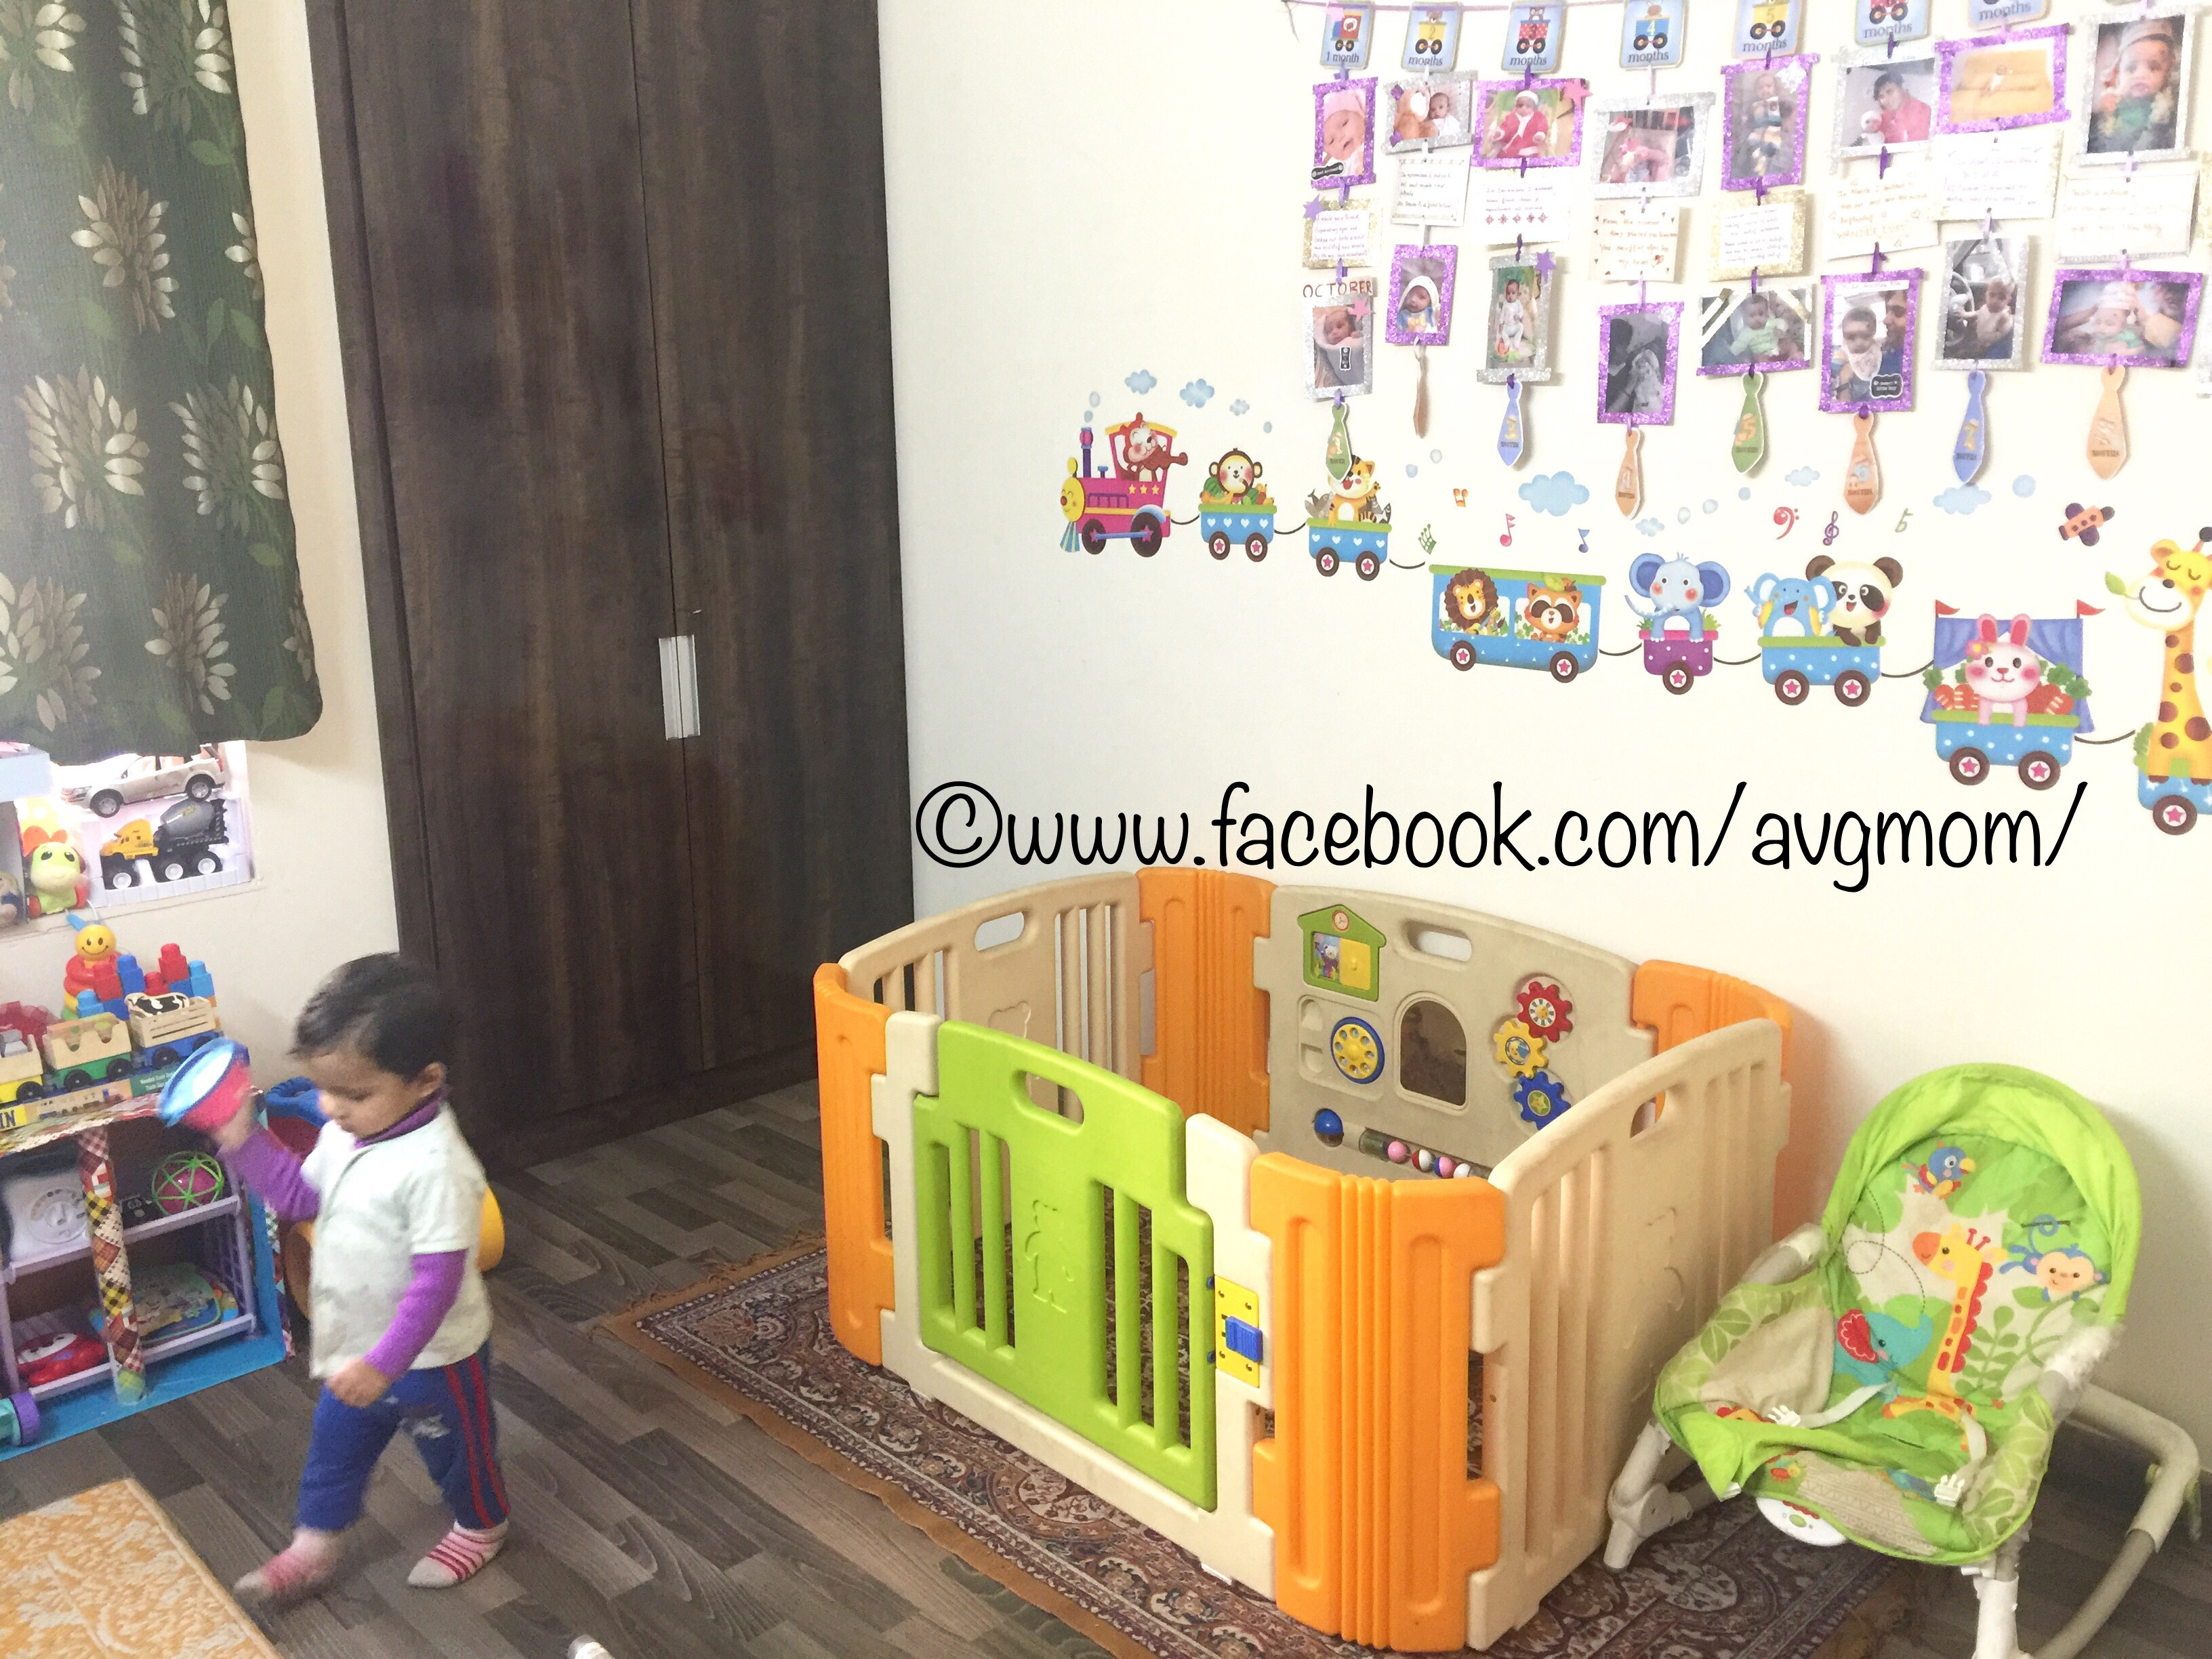 10 DIY ideas to decorate a toddler's play room